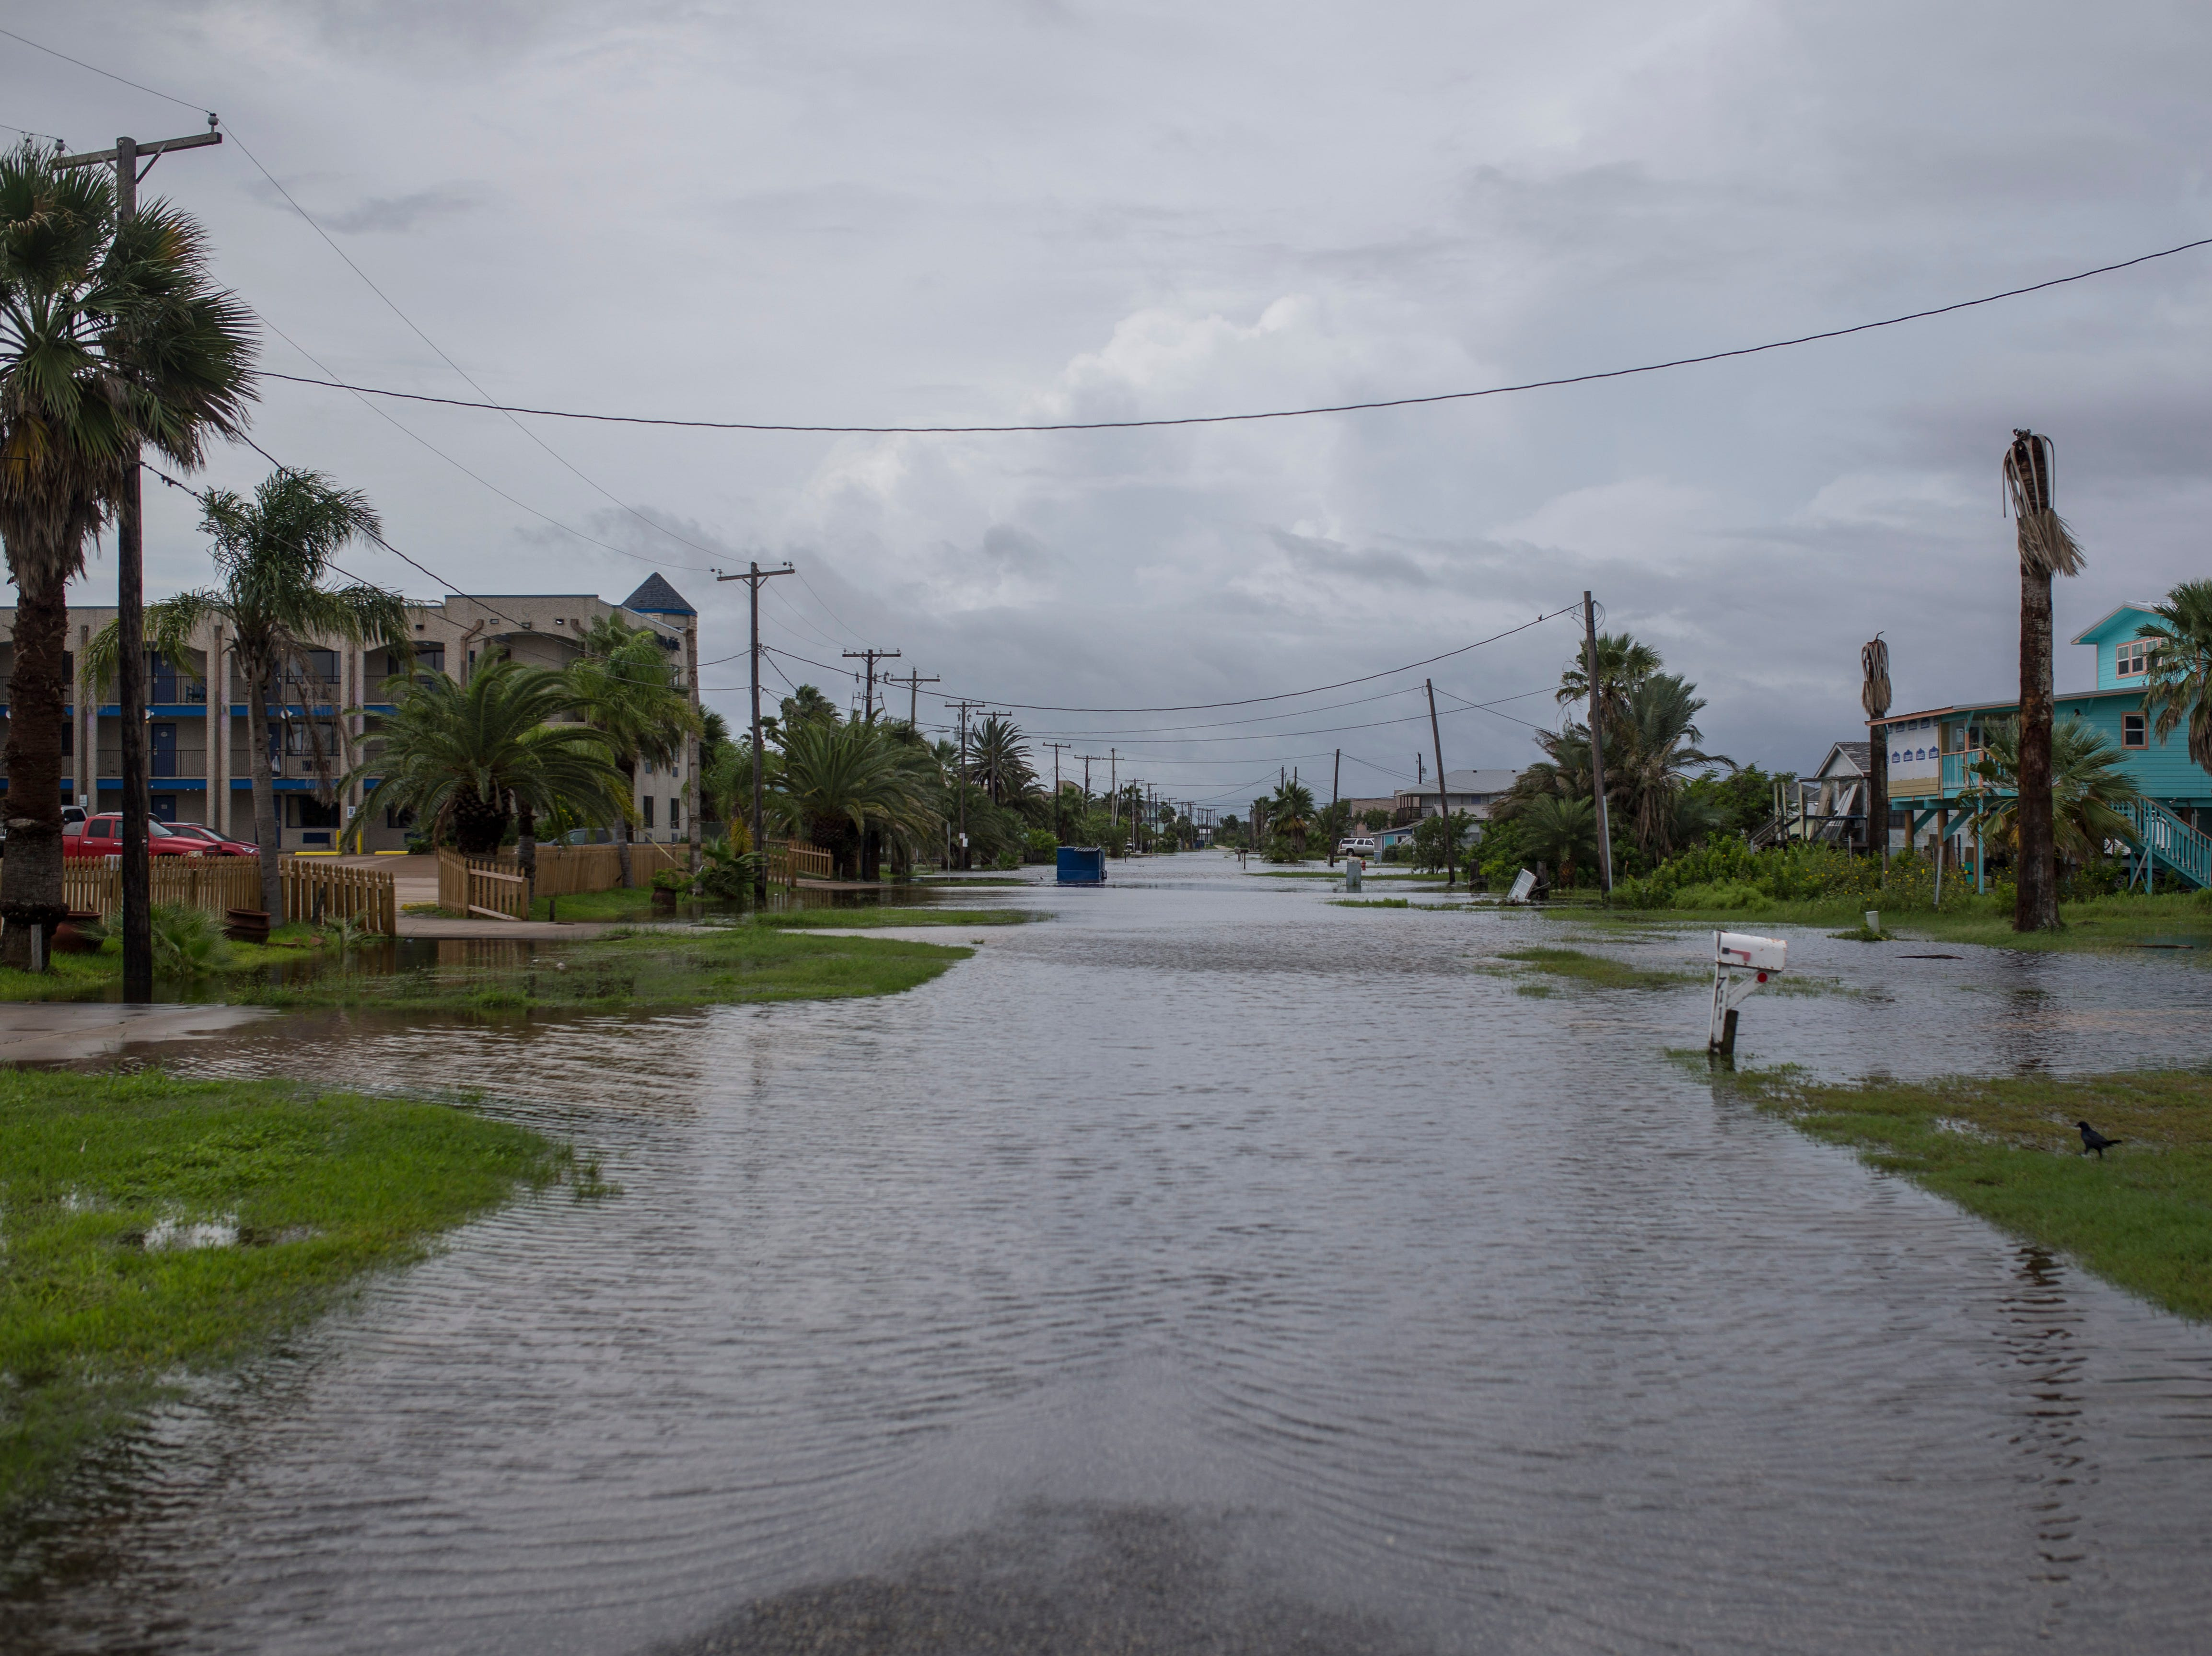 Water sits above South Magnolia street in Rockport, Texas on Saturday, Sept. 15, 2018.